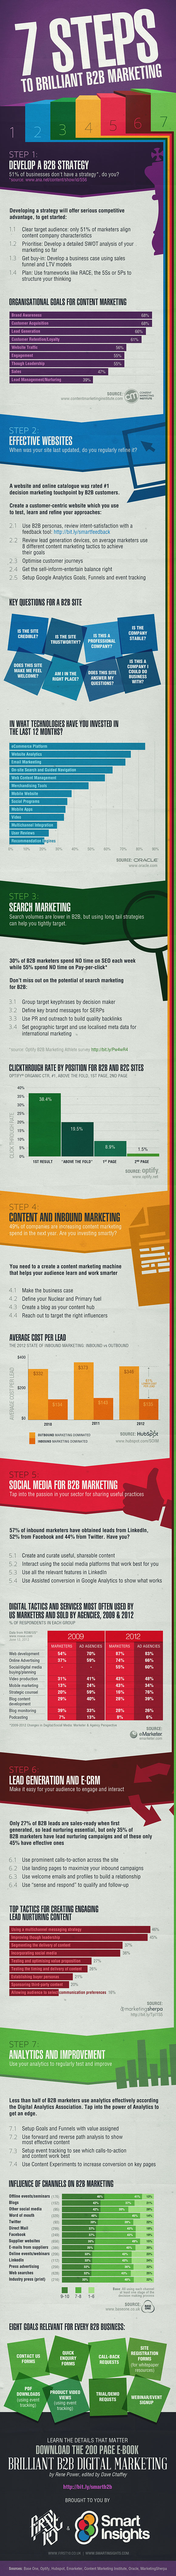 B2B Marketing Plan Outline-Infographic